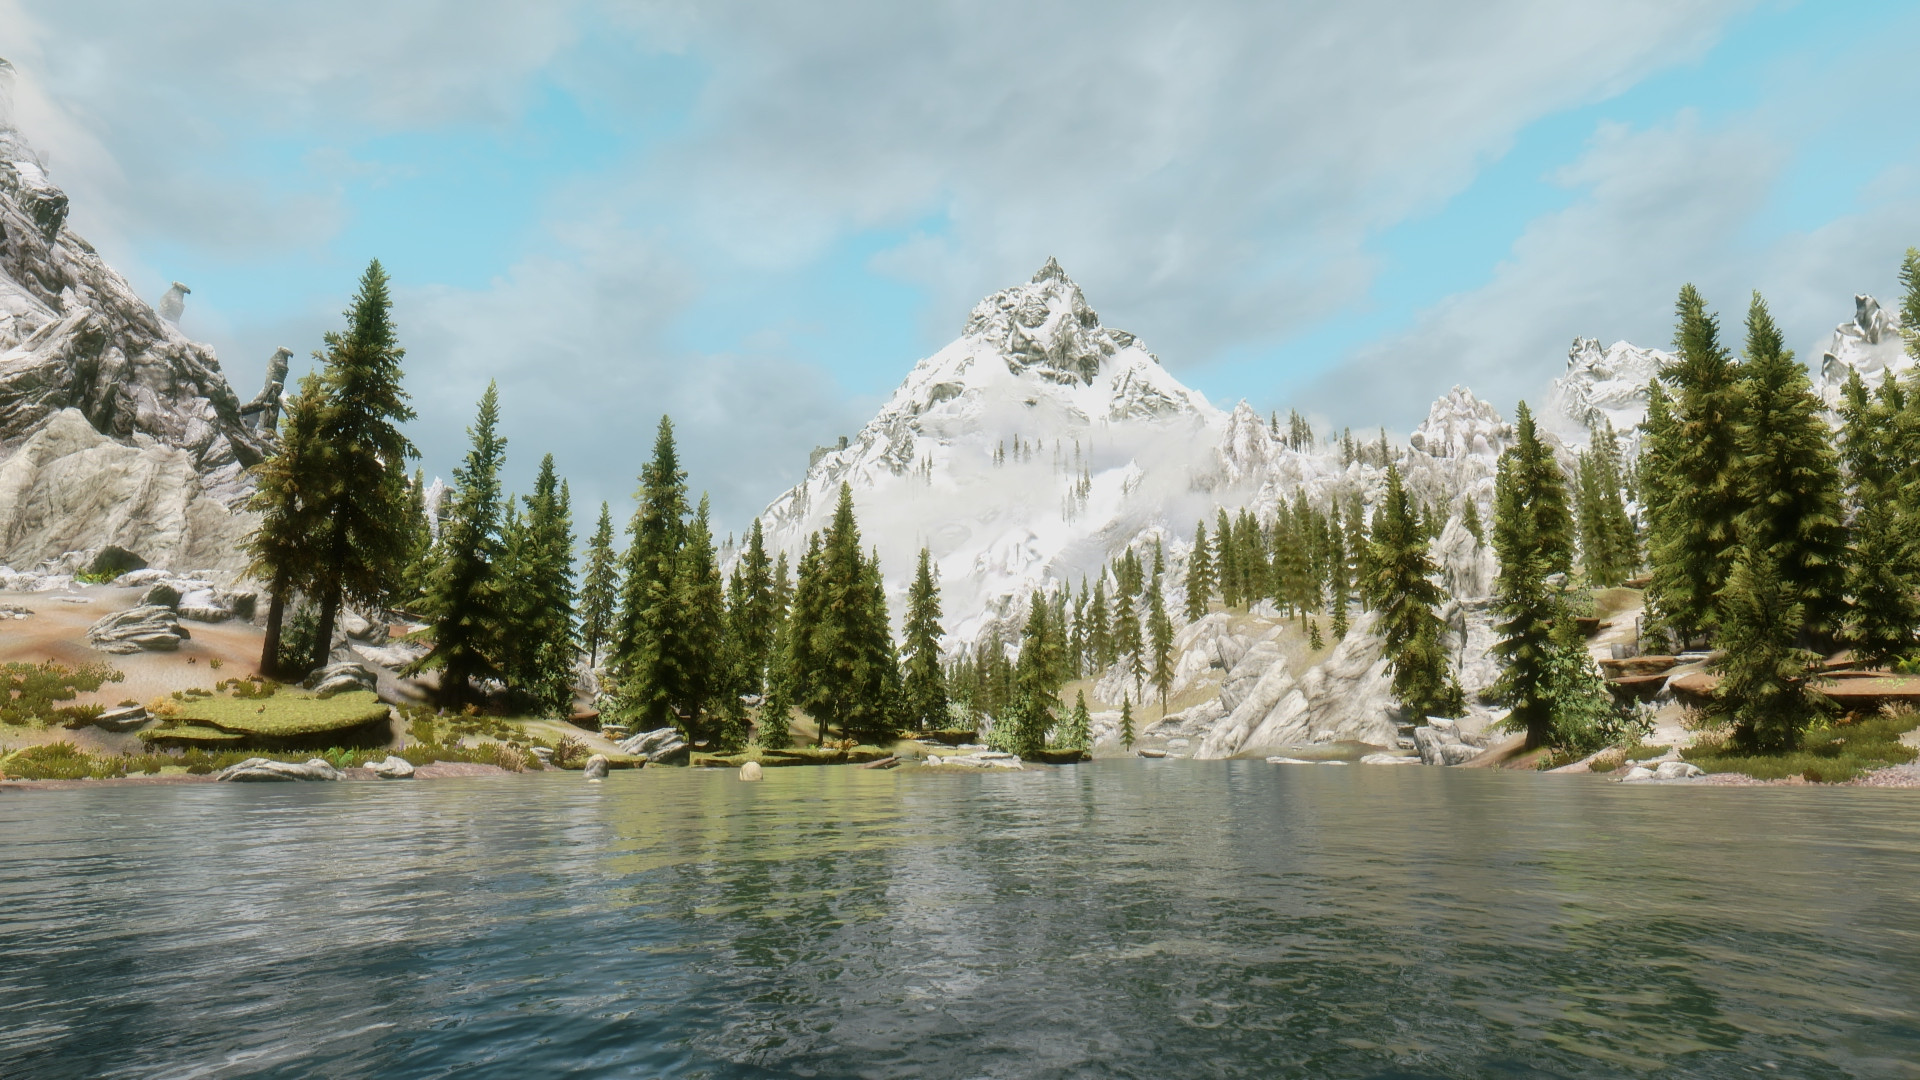 Skyrim Looks Absolutely Gorgeous In These 2016 Mods y8Eip8E